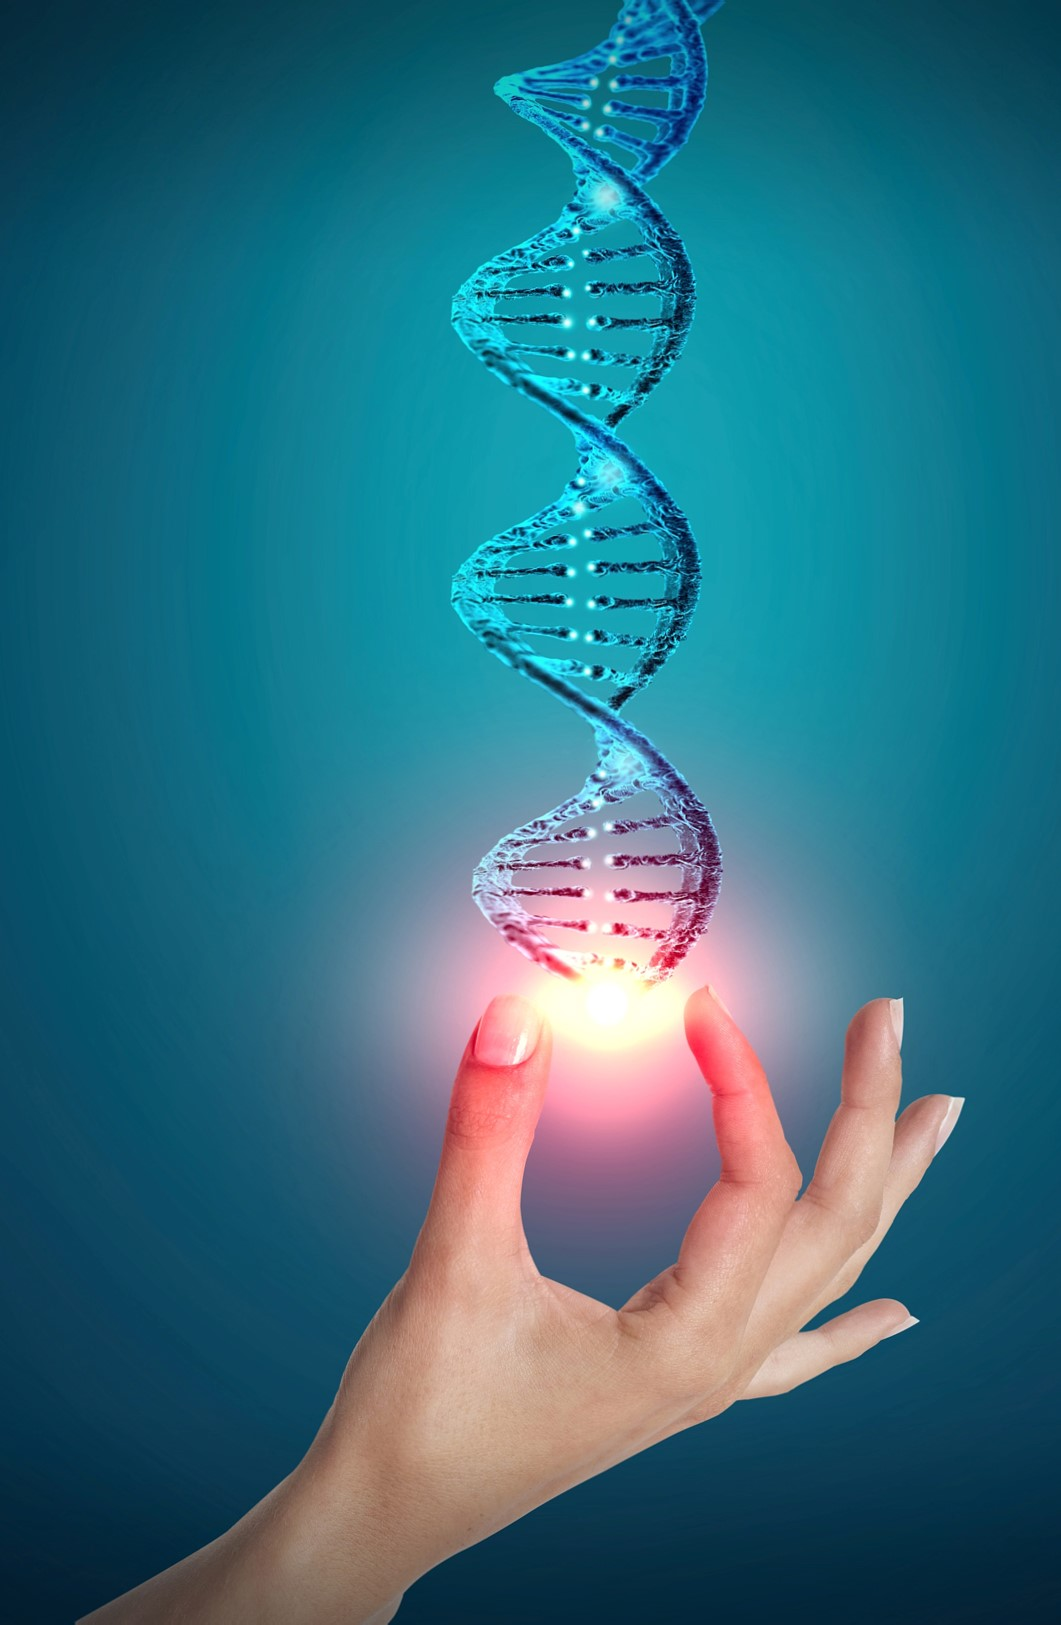 DNA - Genetic Sequencing Concept - Genome